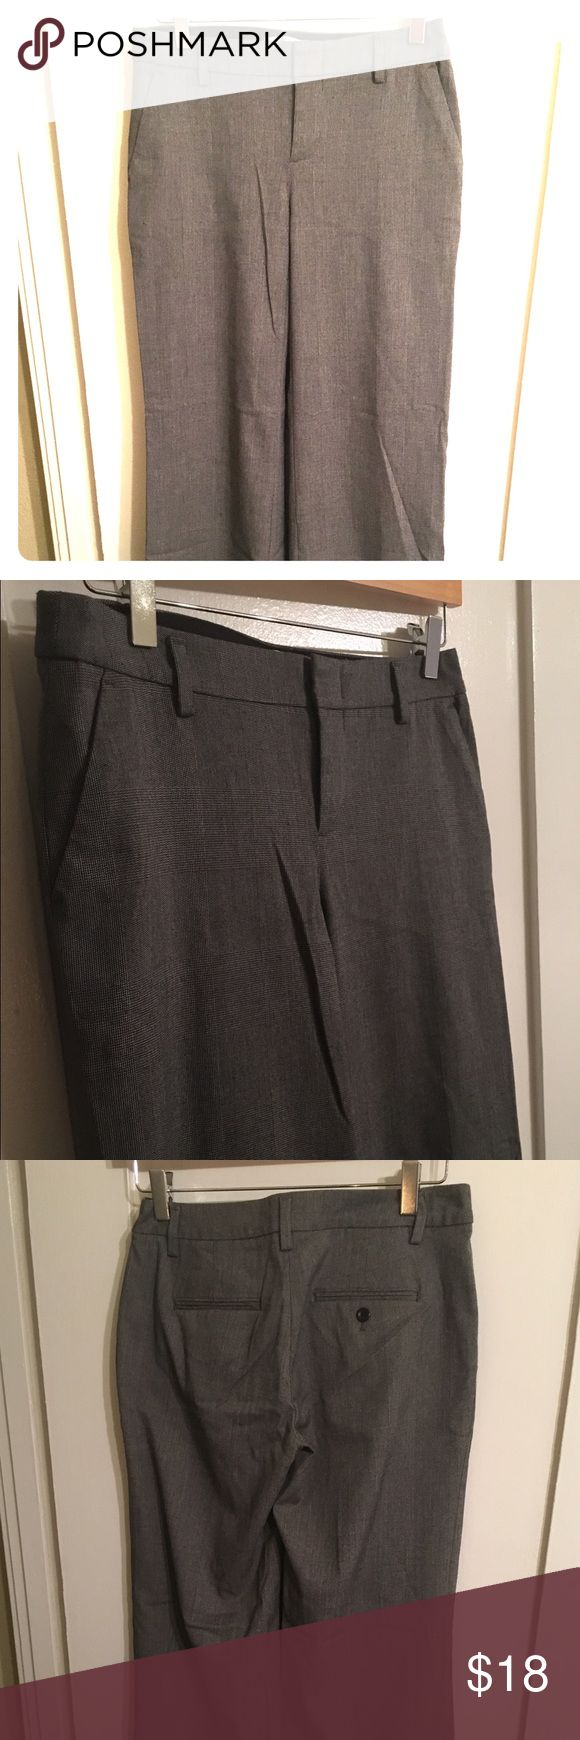 Womens Gap Wide Leg Trouser size 0r stretch Gently used gap women's wide leg trousers. These have no signs of wear and look the same as the day they came back from the store. 65% polyester, 33% viscose 2% Lycra spandex. GAP Pants Wide Leg